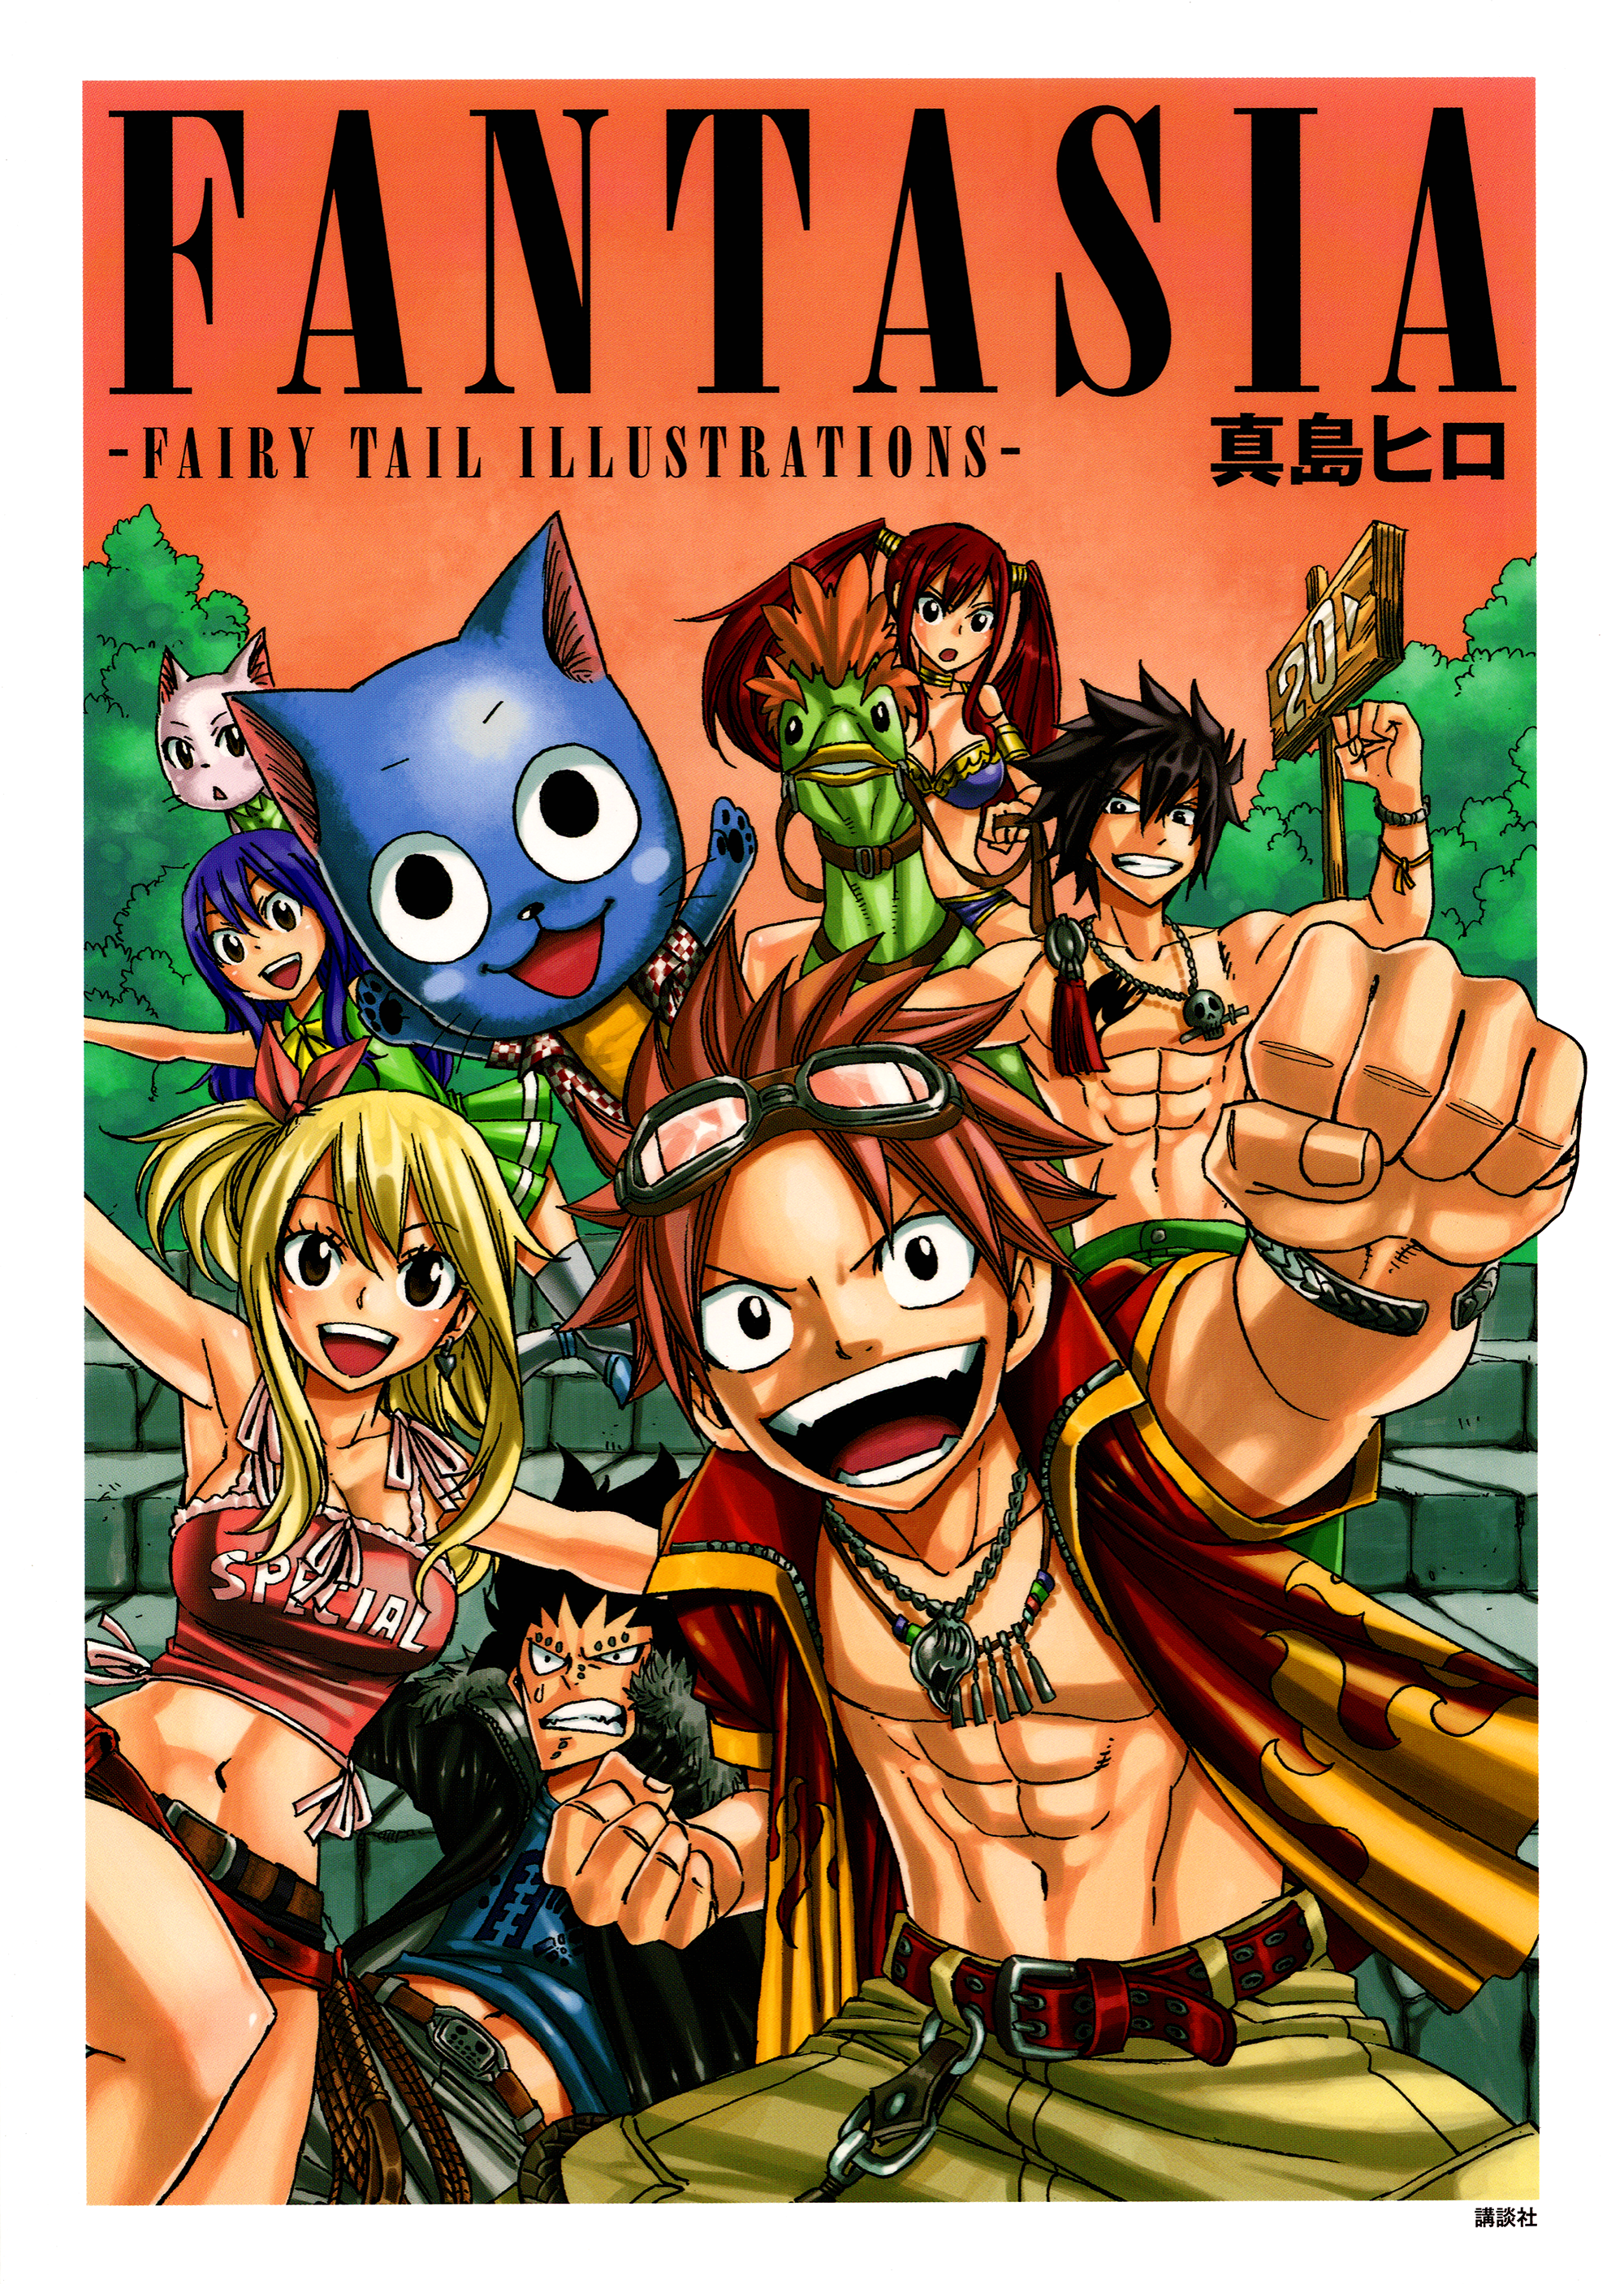 Image cover of fairy tail wiki fandom powered by wikia - Fairy tail fantasia ...